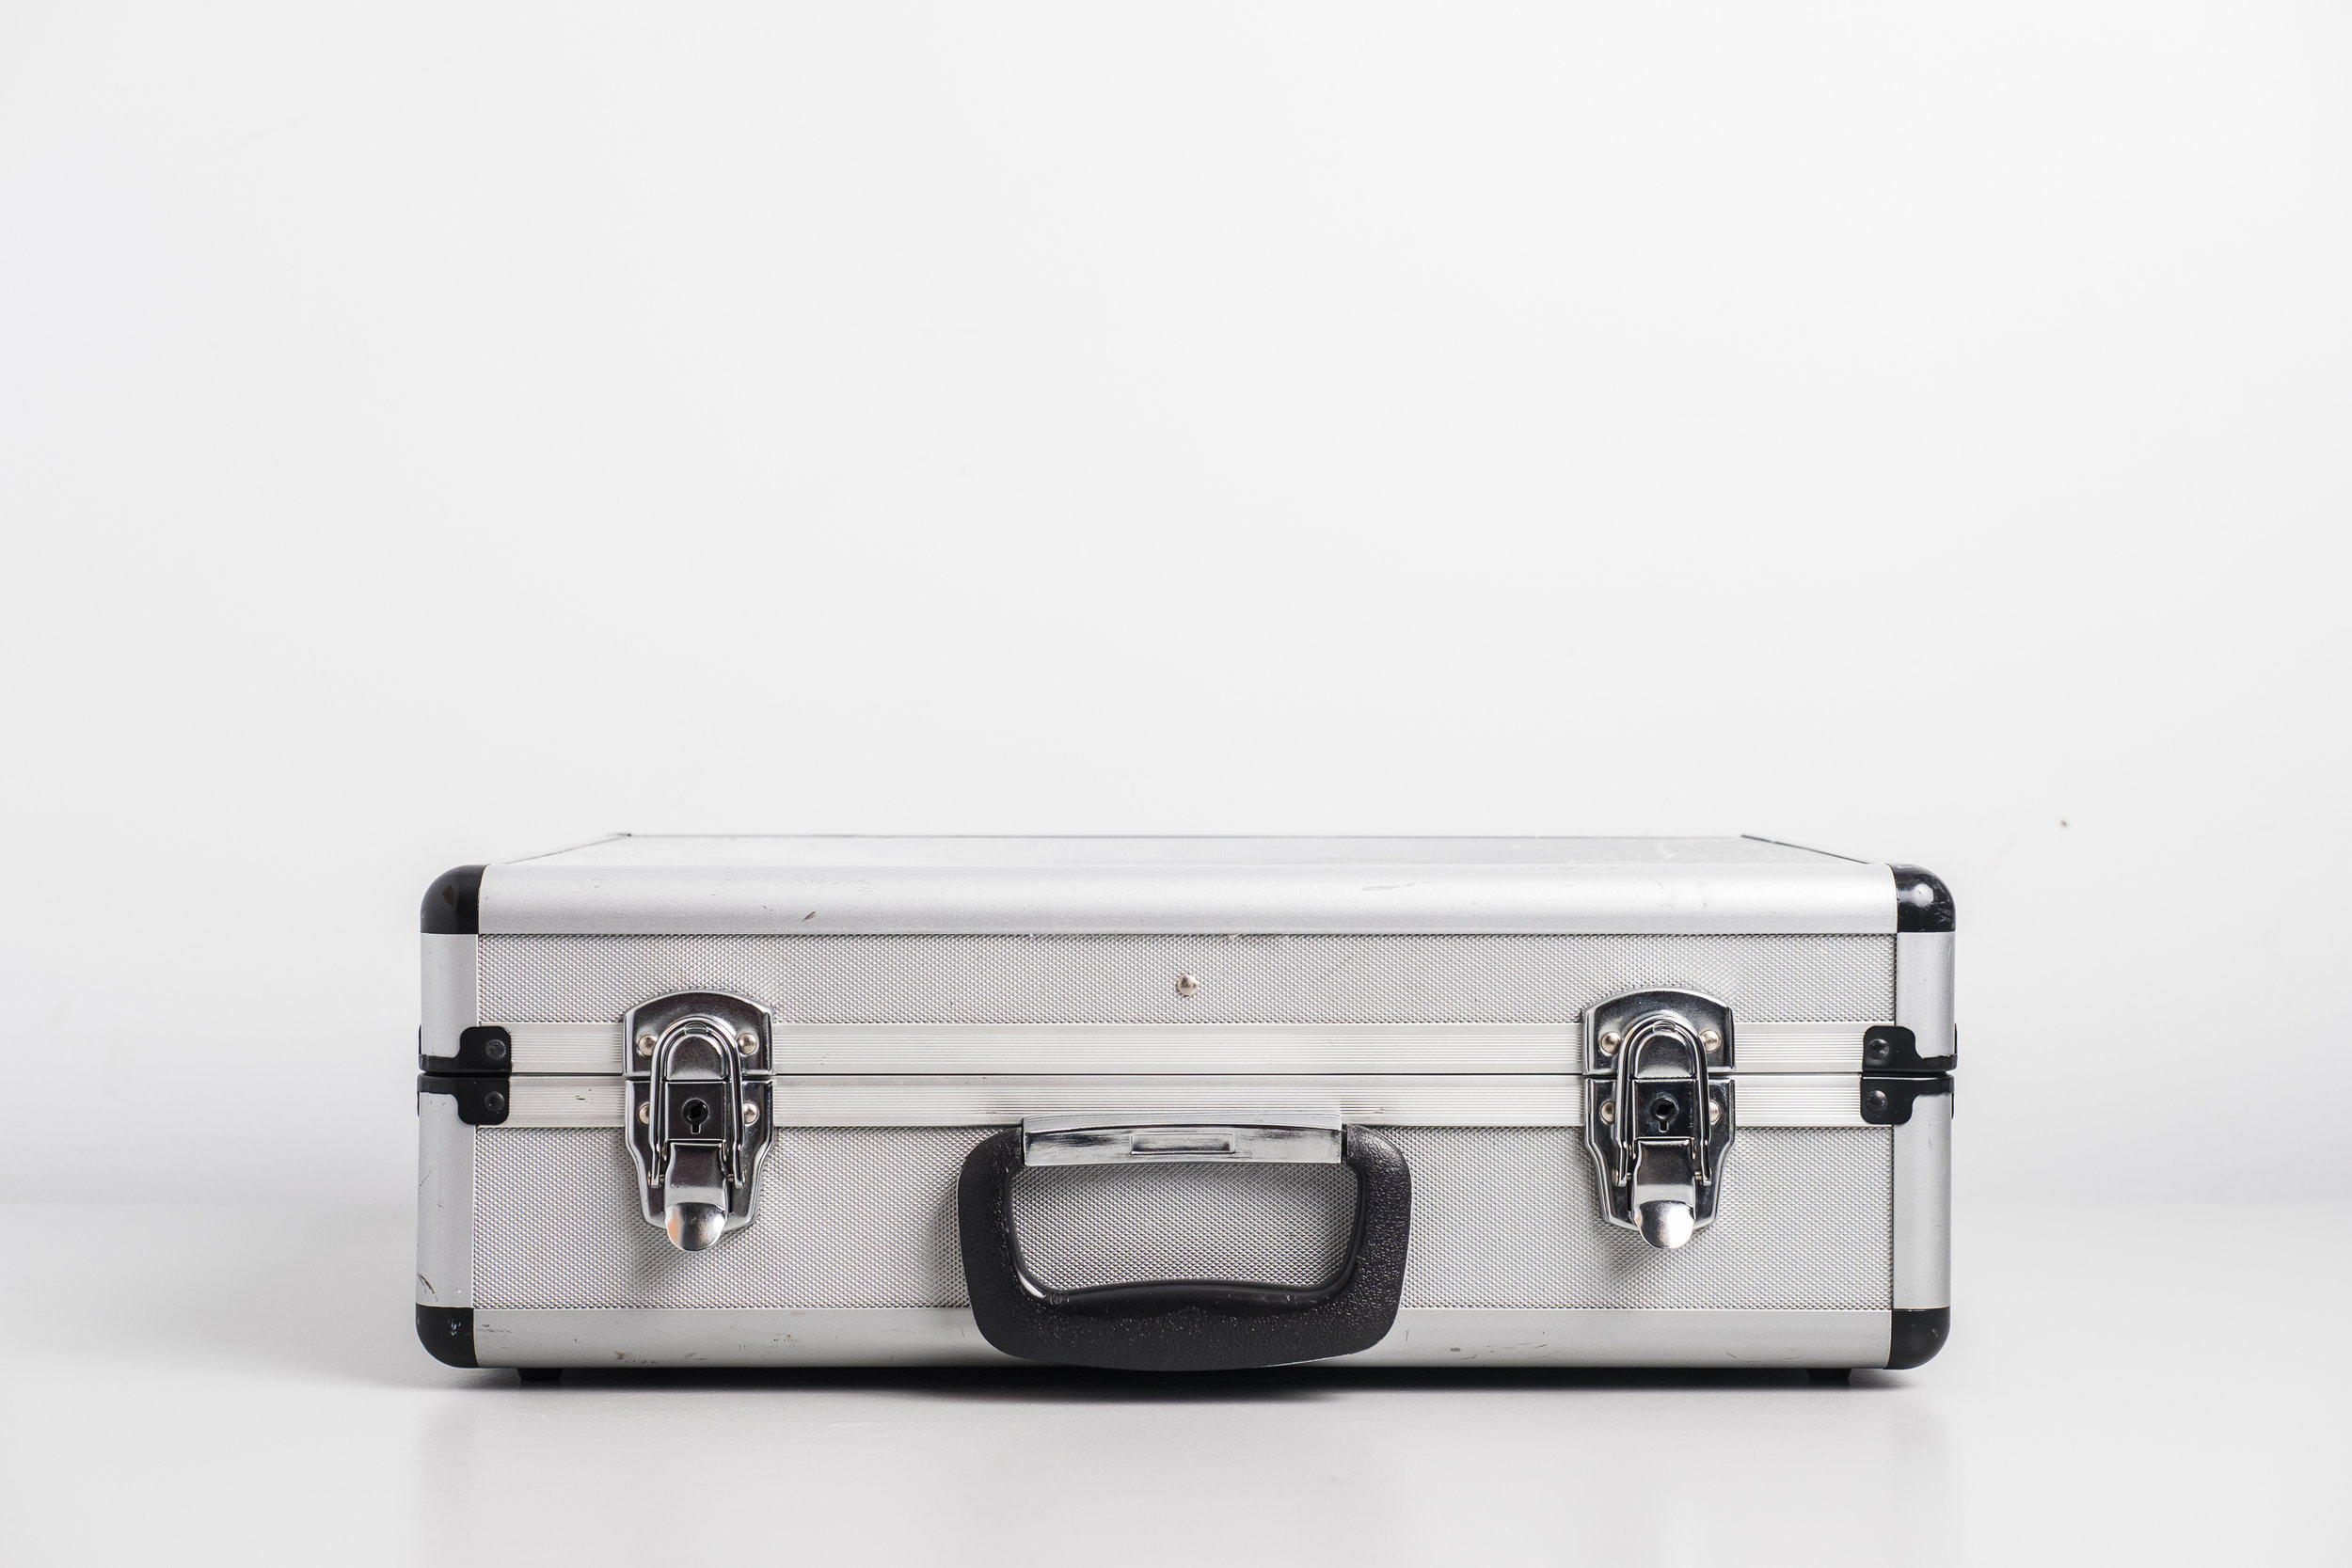 art-collaboration-by-montreal-insectarium-suitcase-with-insects